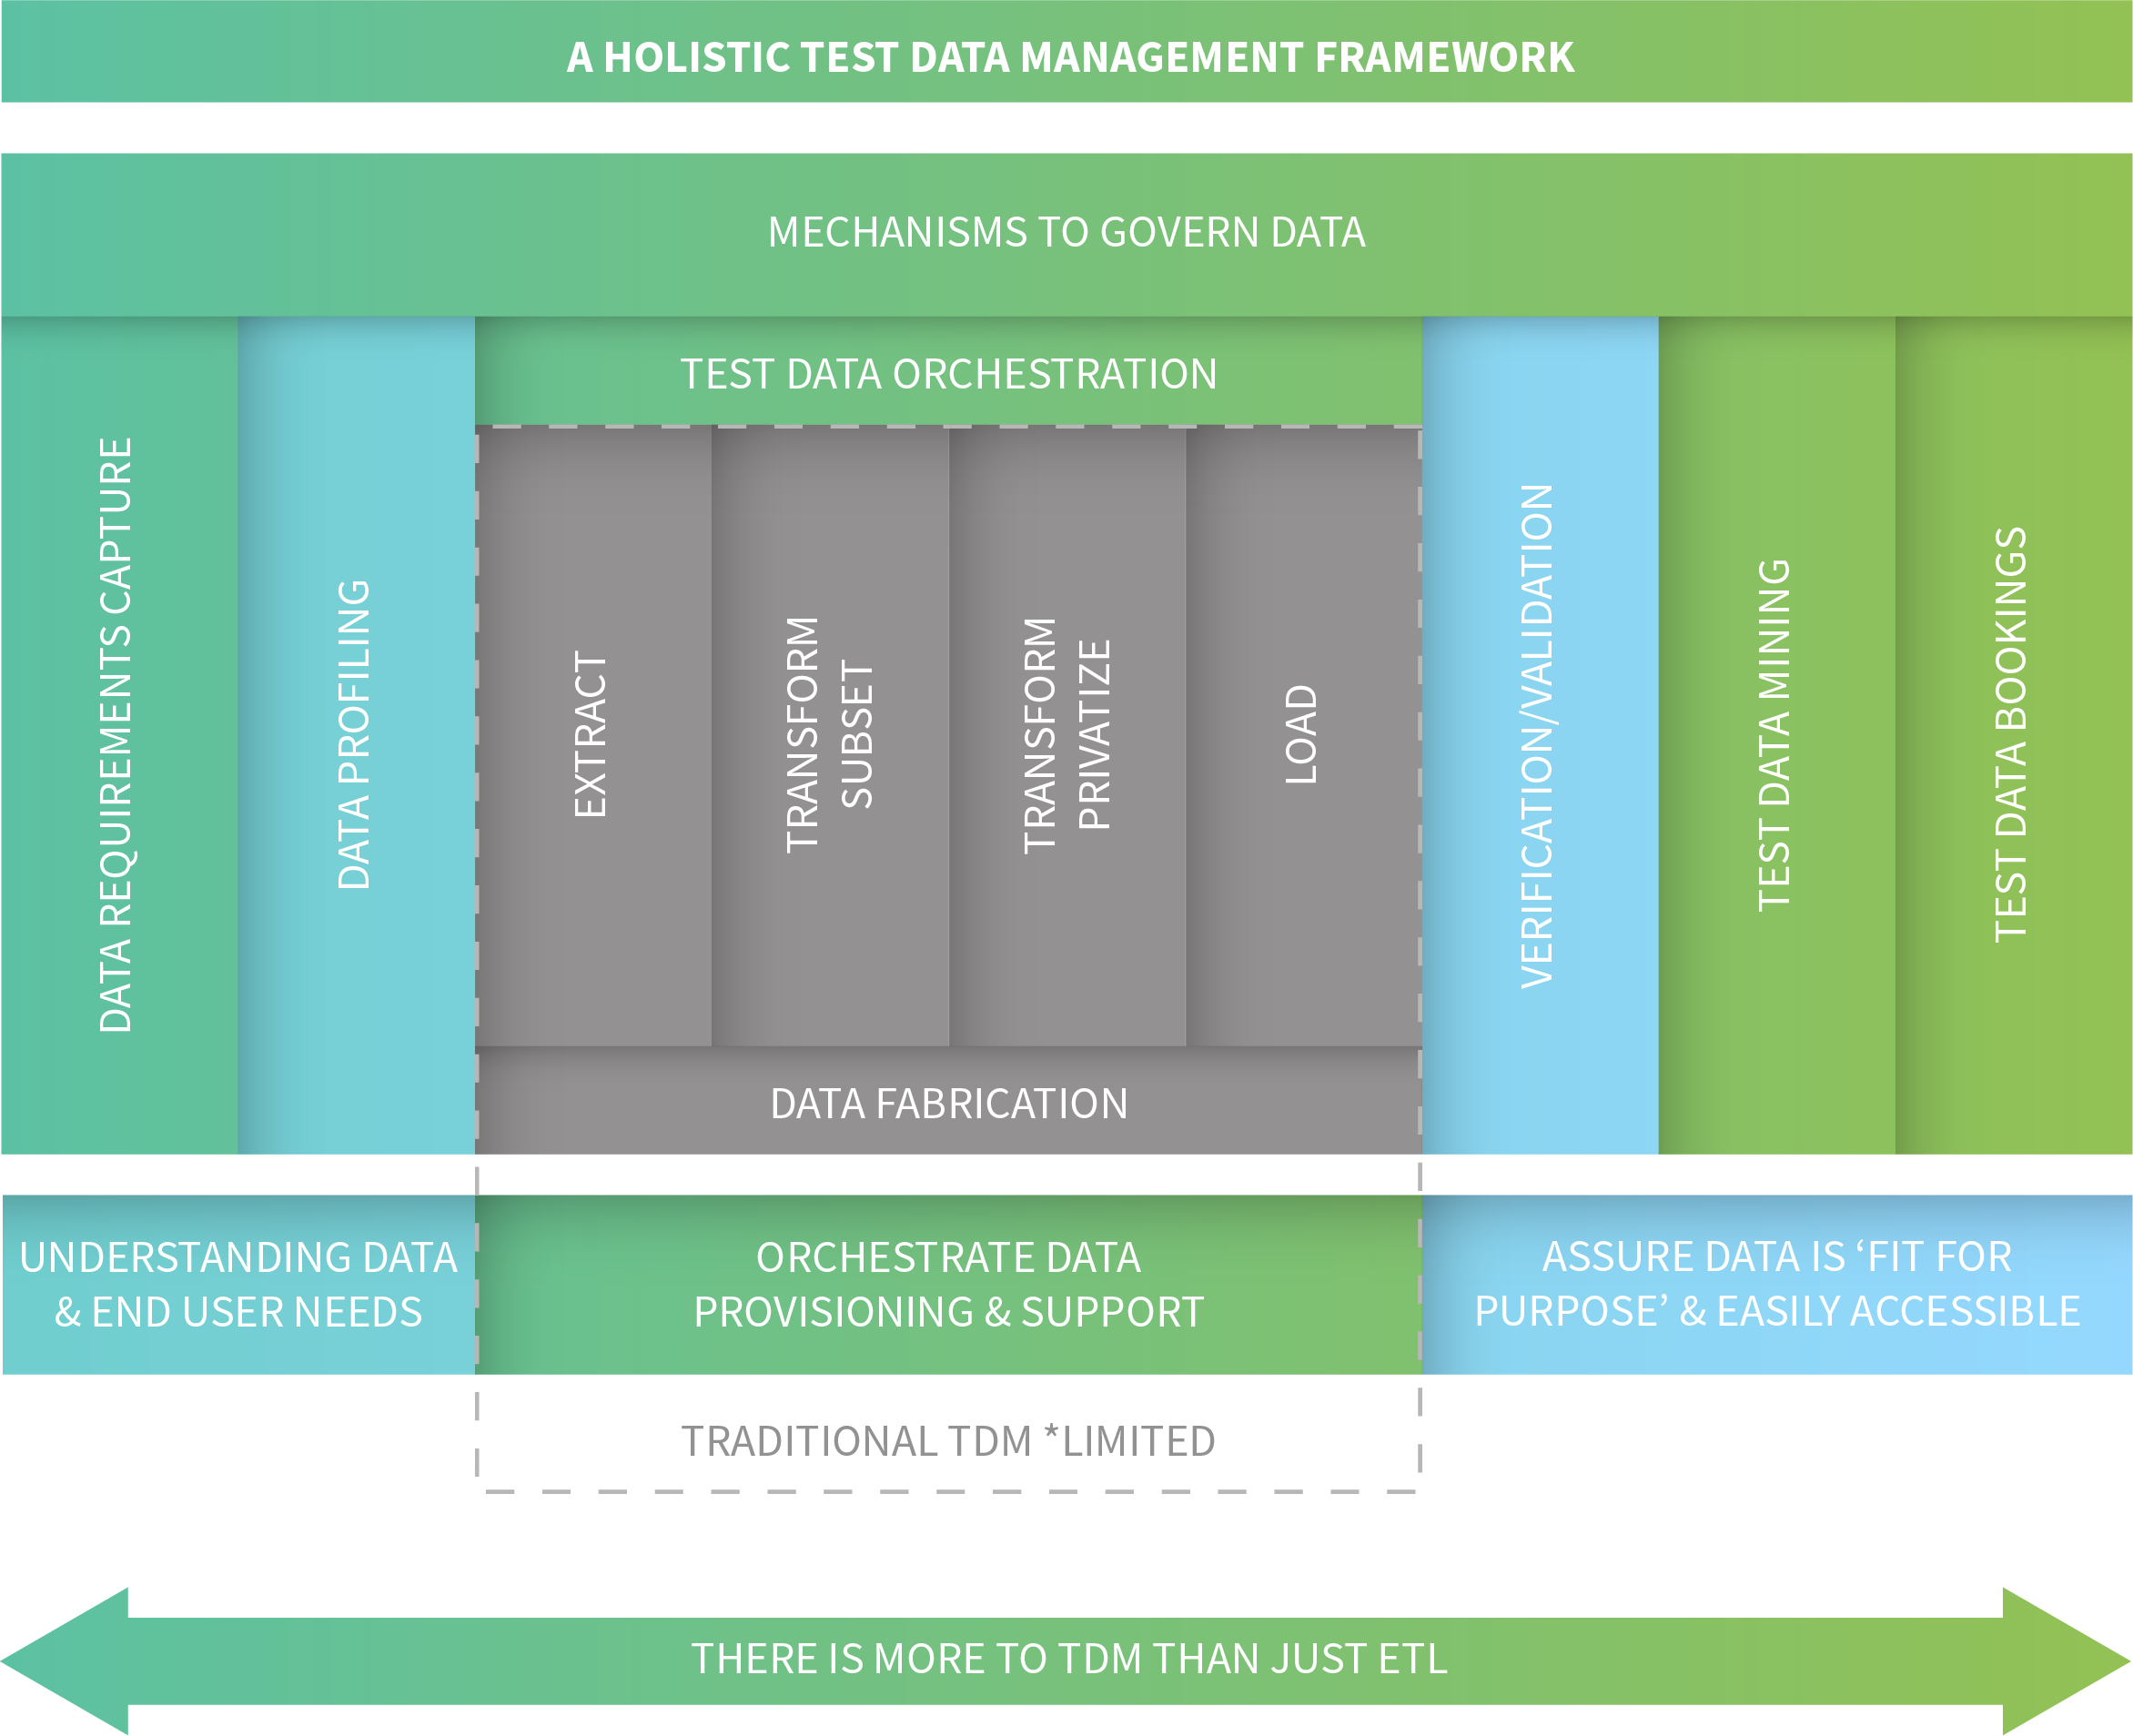 Enov8's Holistics Test Data Management Framework